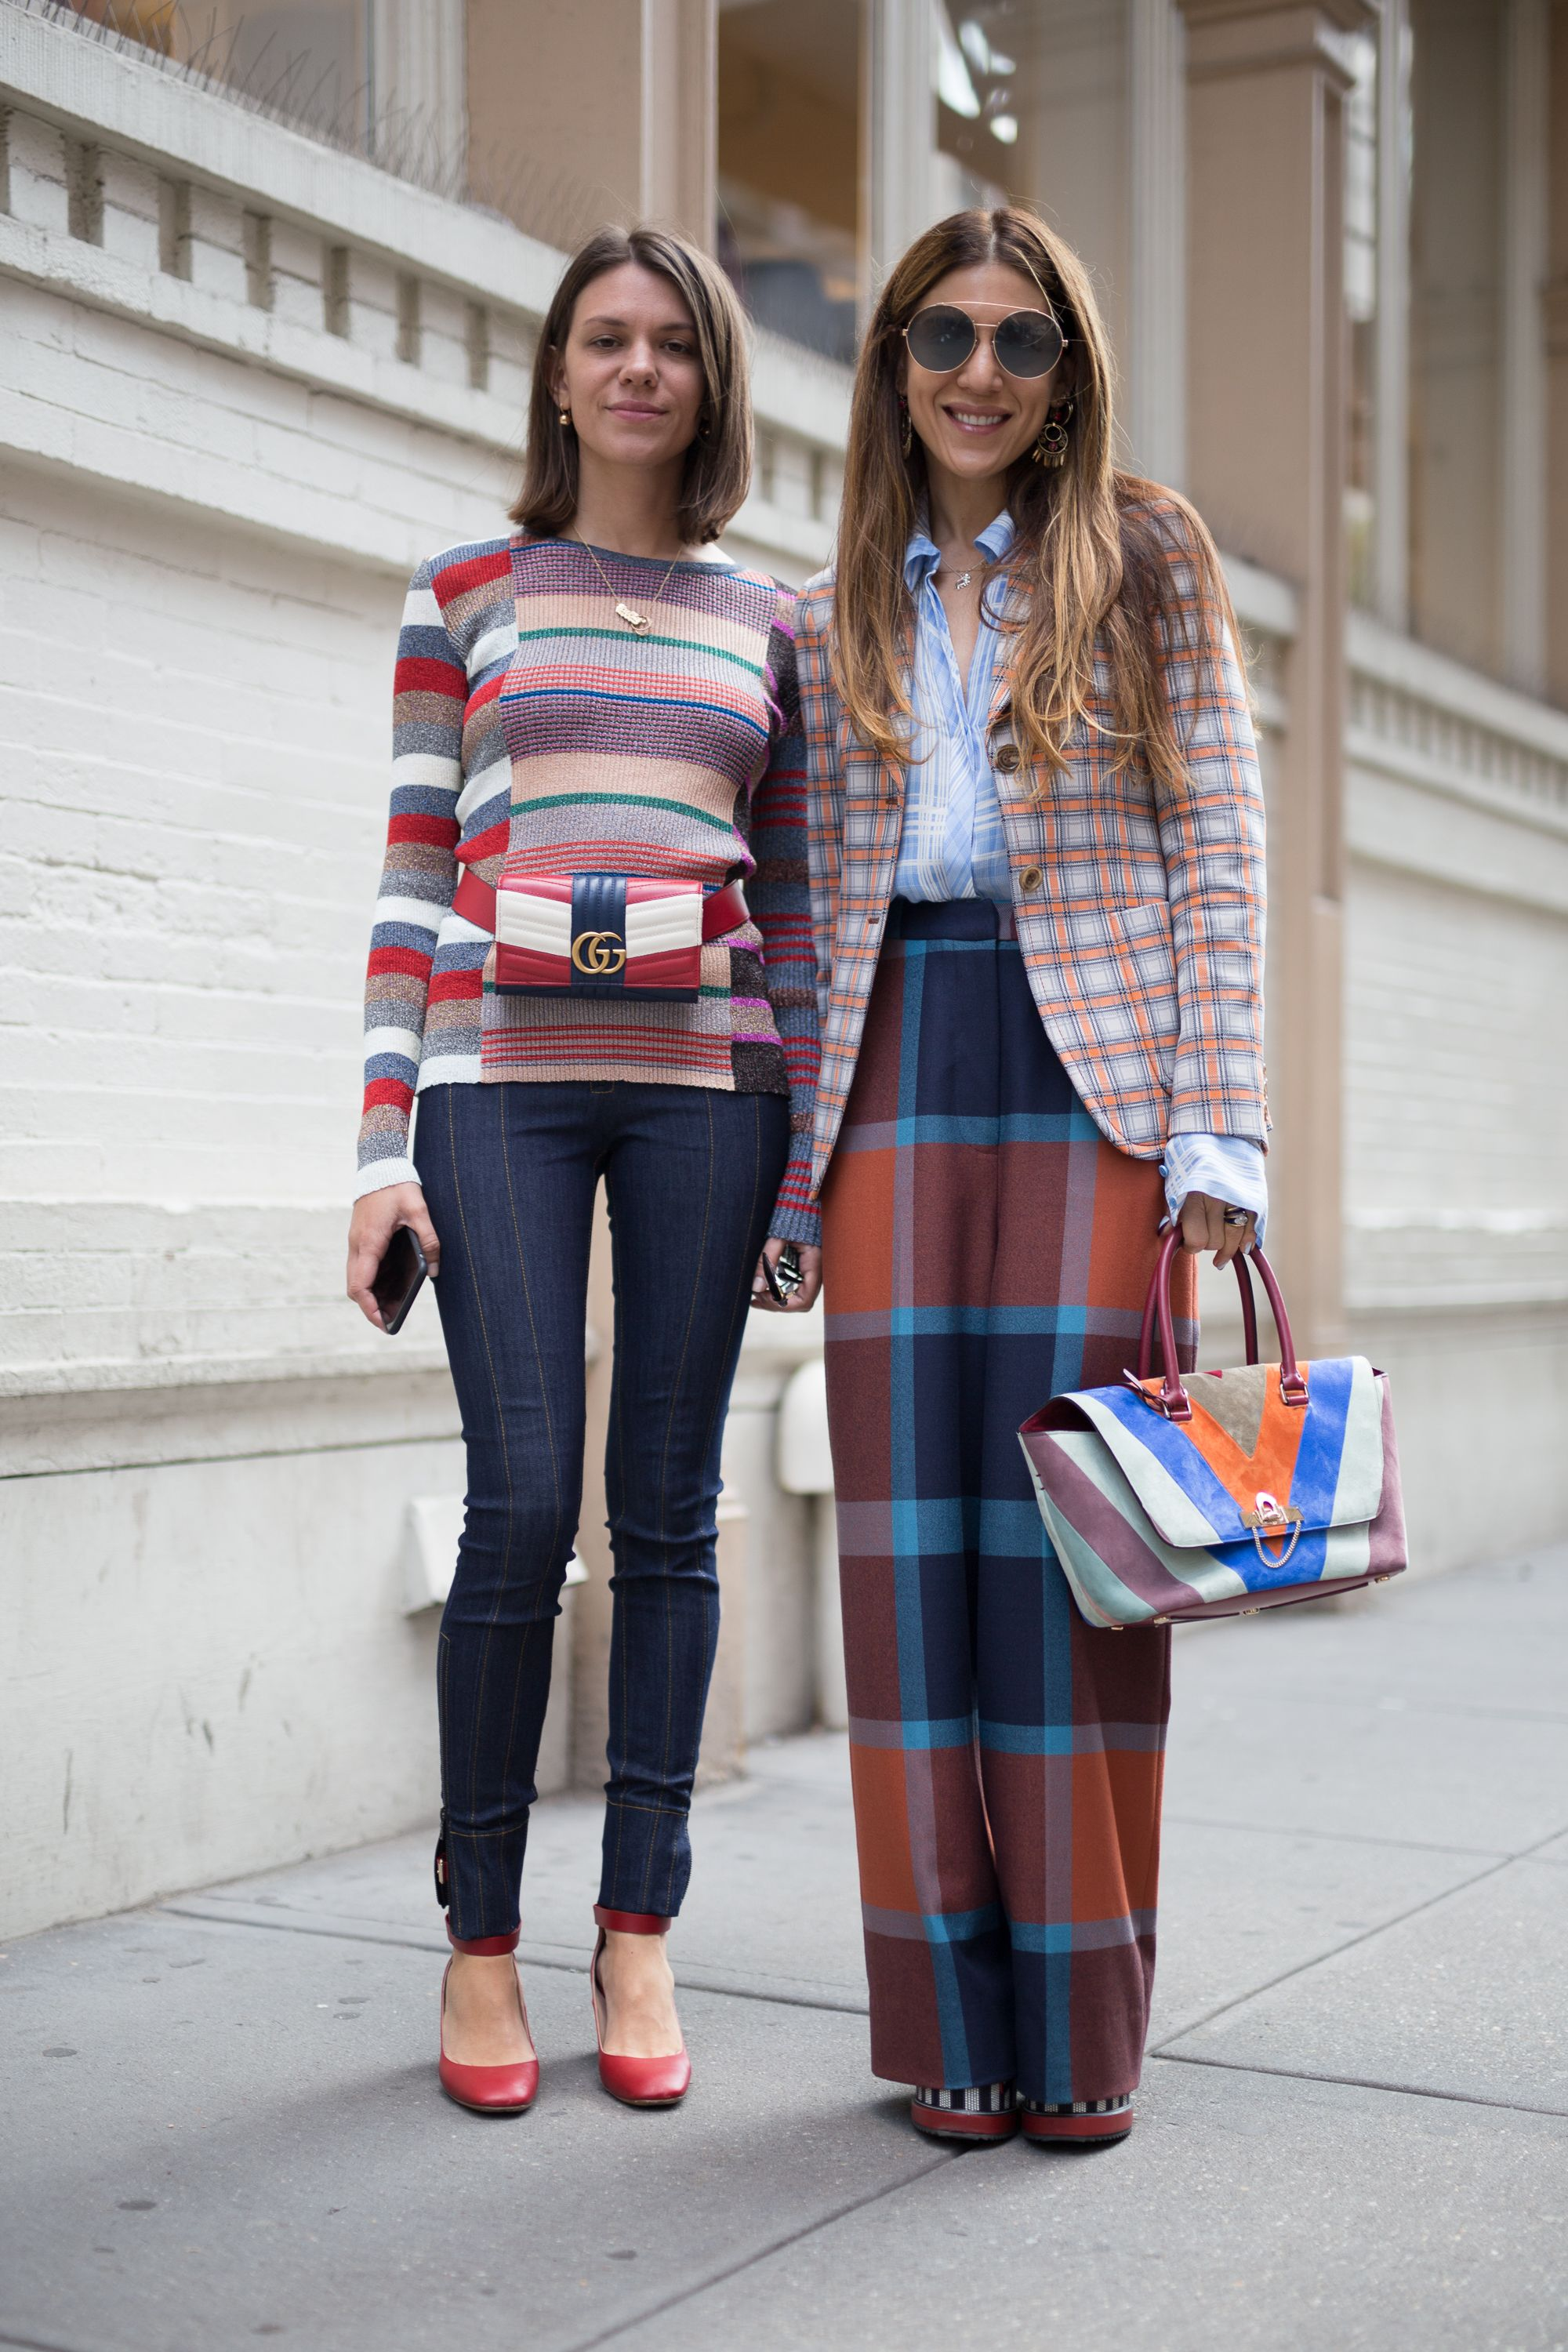 Cute Fall Outfits - What to Wear in Fall 9a3acf3b1